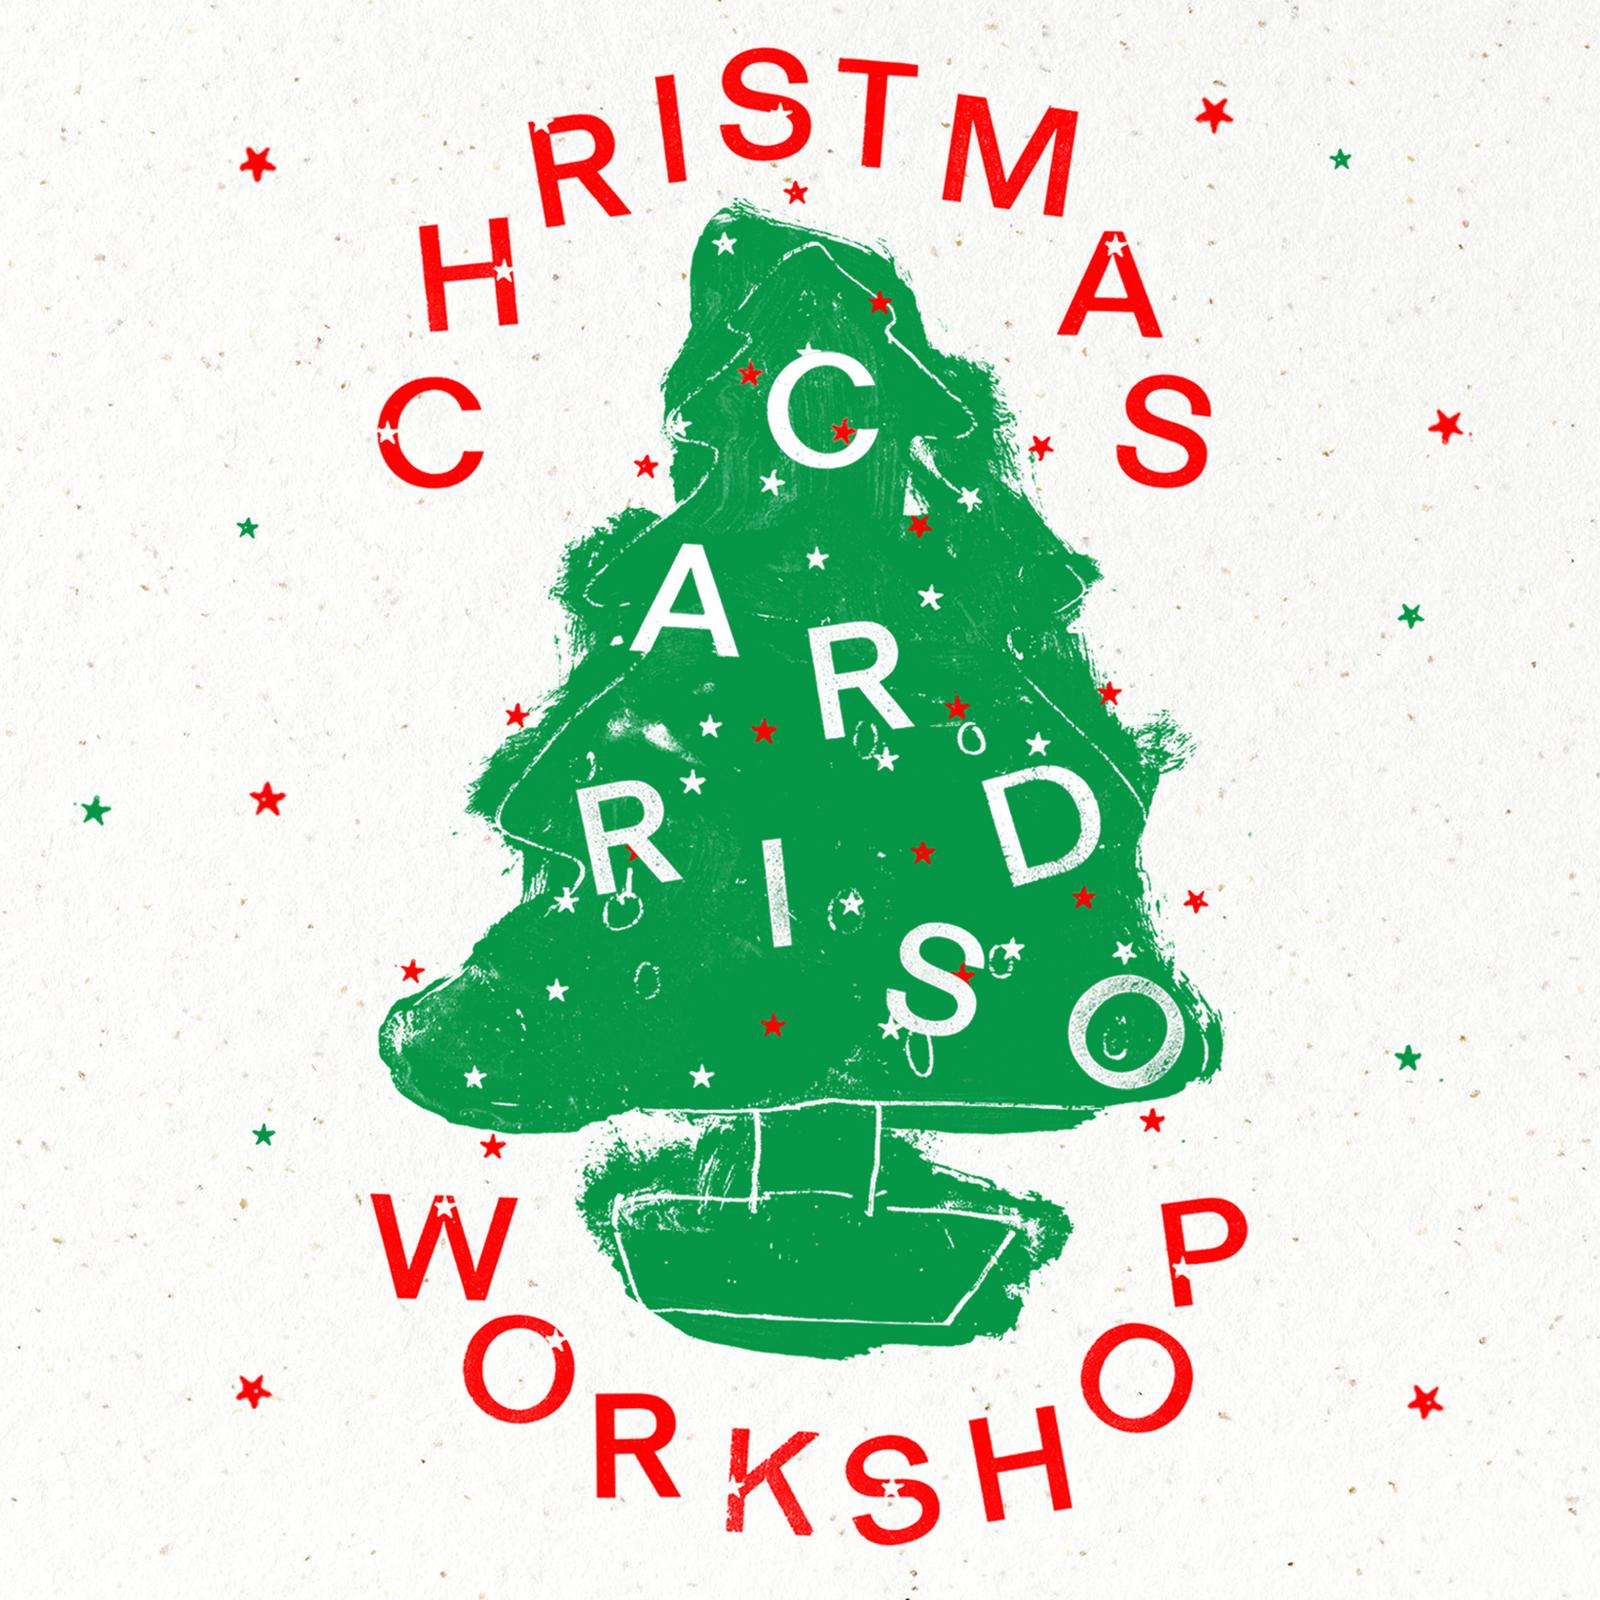 Risograph Christmas Card Workshop | 16Tonne